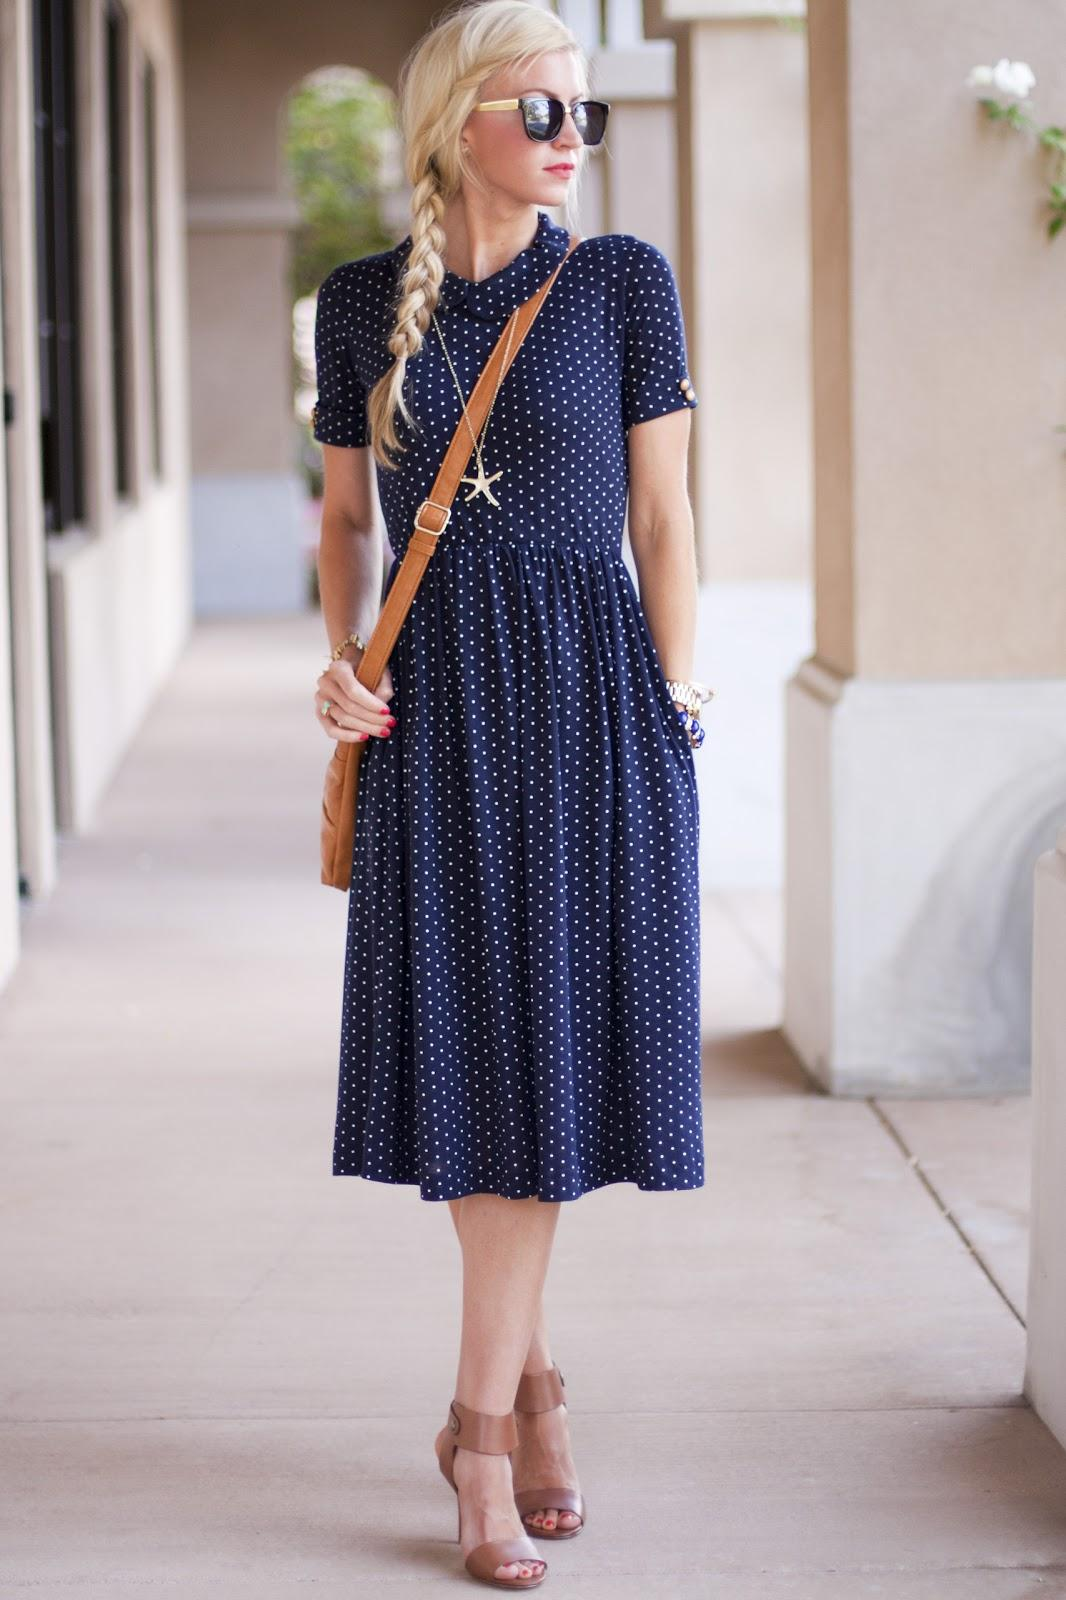 3 The Day Date Dress